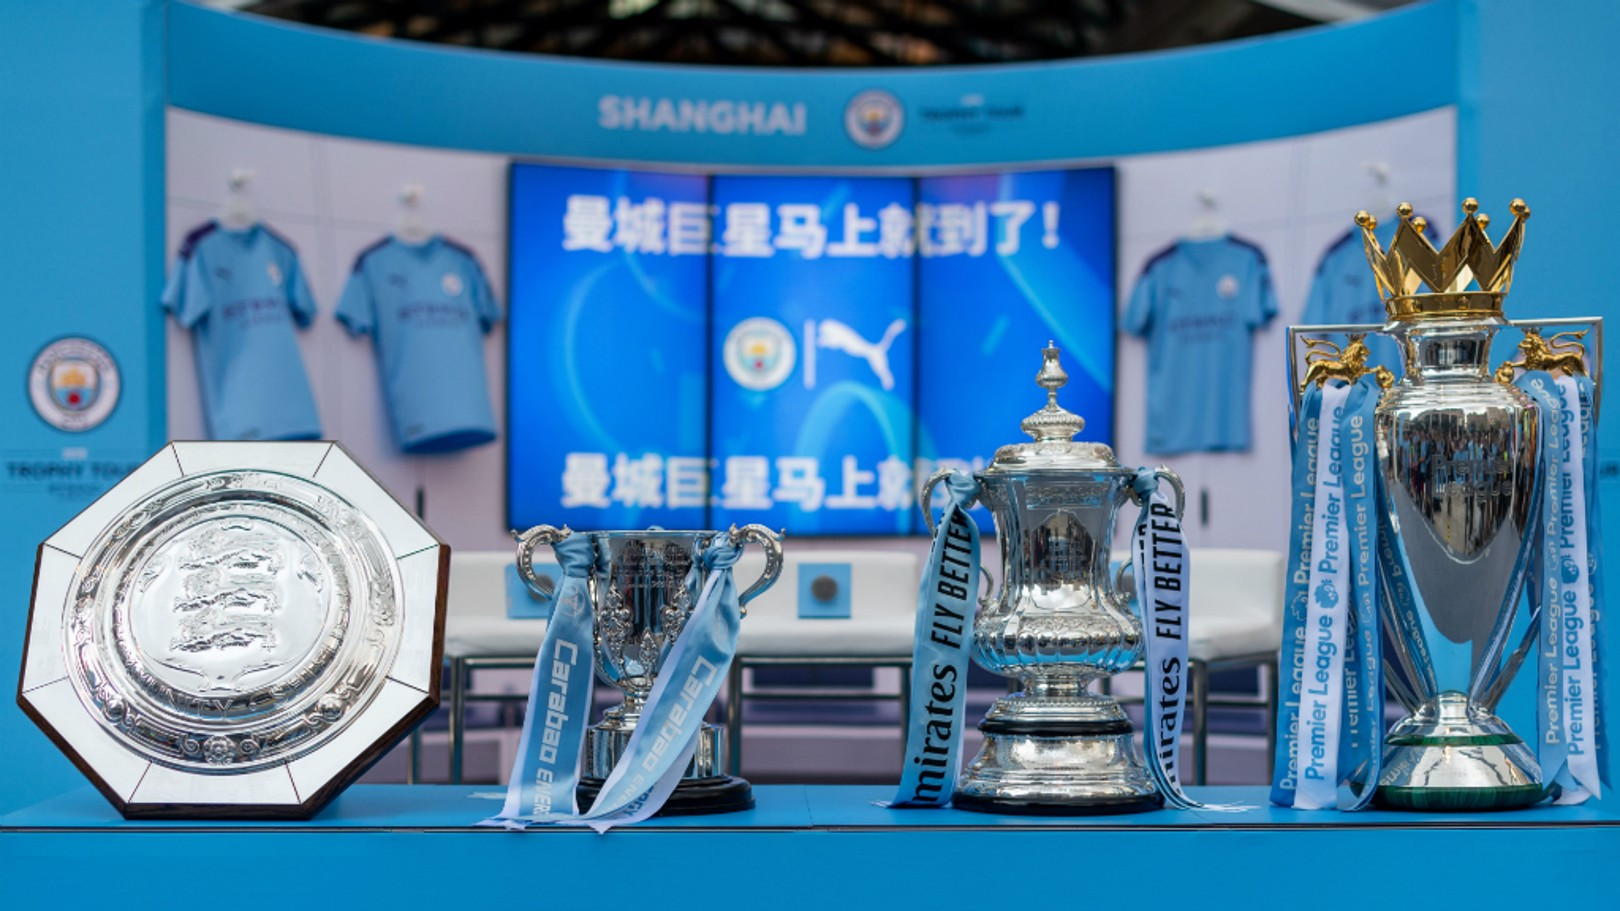 TROPHY TOUR: To celebrate Manchester City's record-breaking 2018/19 season, we are taking the men's and women's trophies on a global Trophy Tour, presented by Etihad Airways.